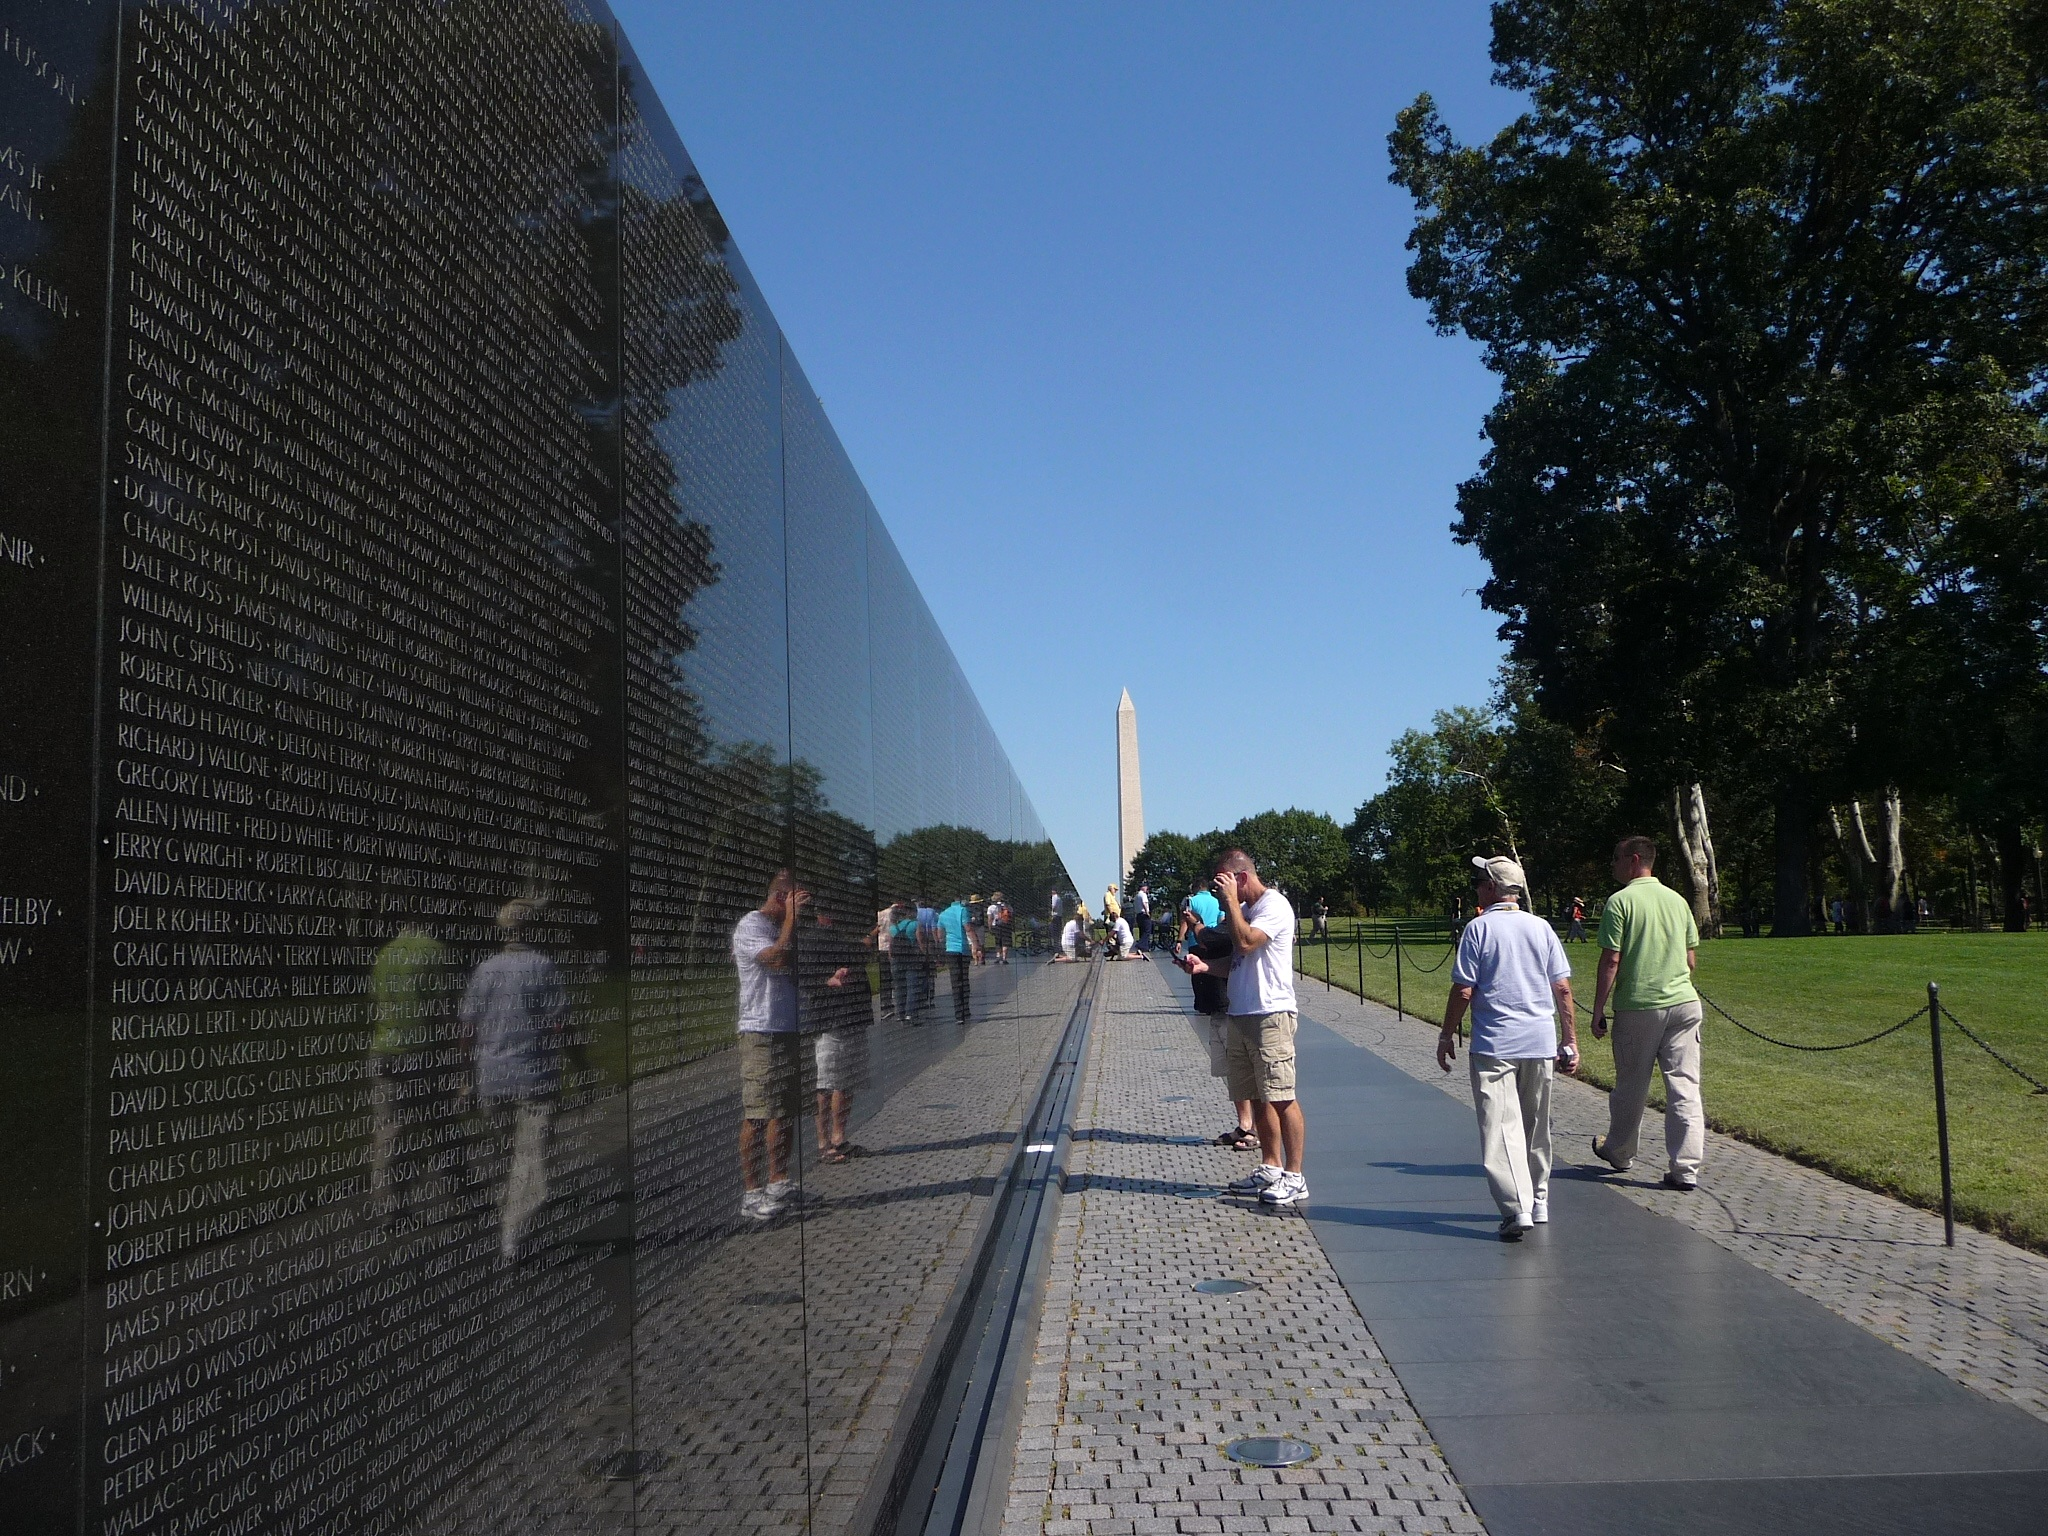 The Black Wall U2013 Vietnam War Memorial With Names Of Men Who Died